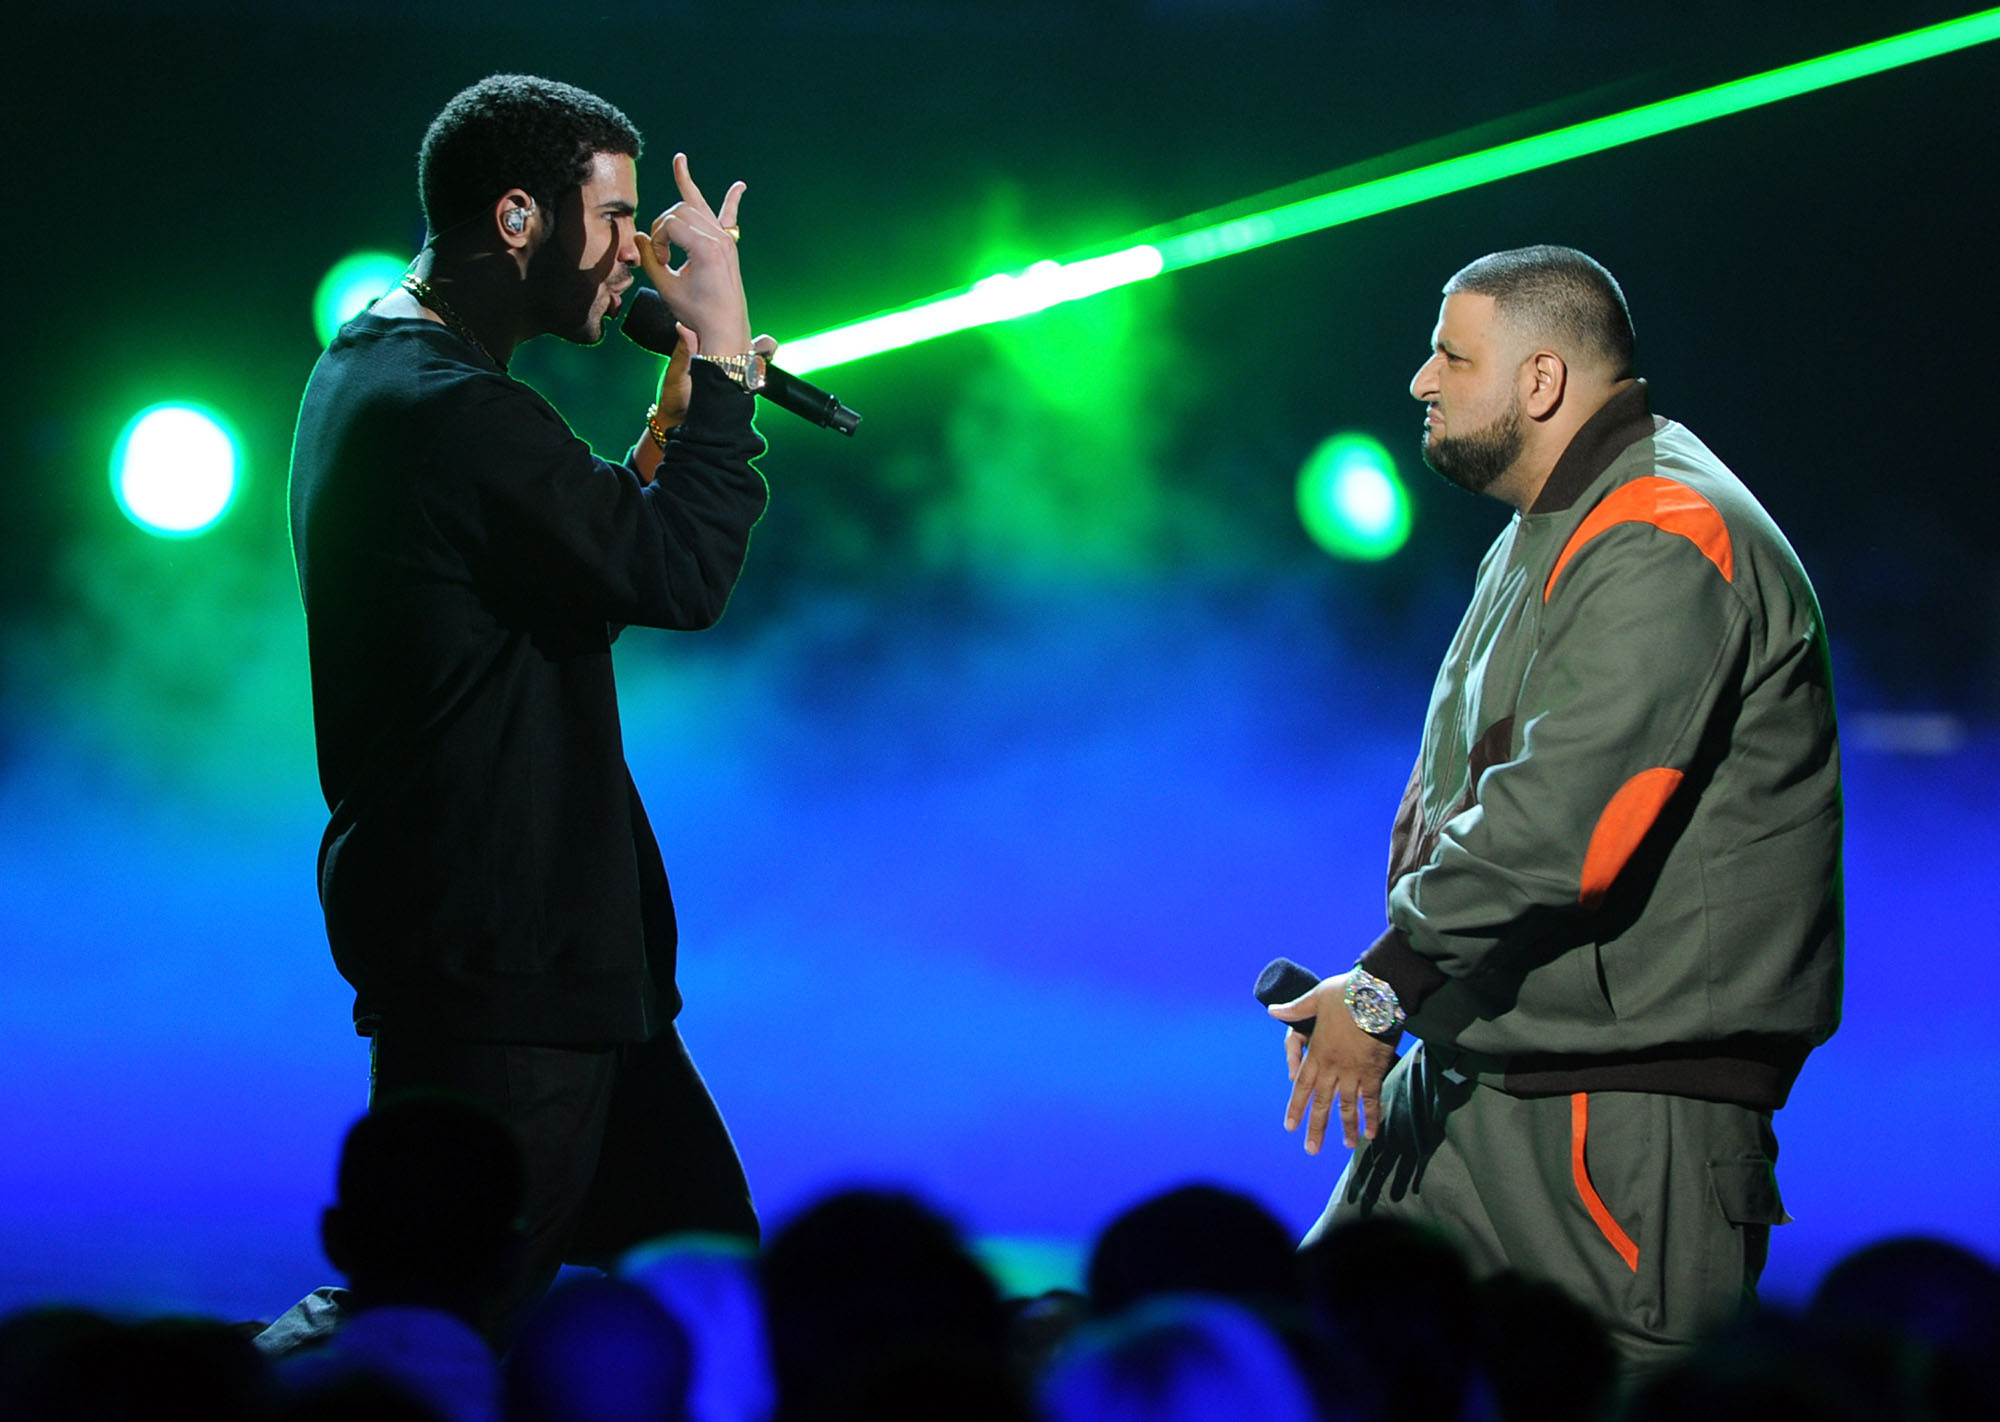 LOS ANGELES, CA - JUNE 26:  Singer Drake (L) and rapper DJ Khaled perform onstage during the BET Awards '11 (Photo by Kevin Winter/Getty Images)